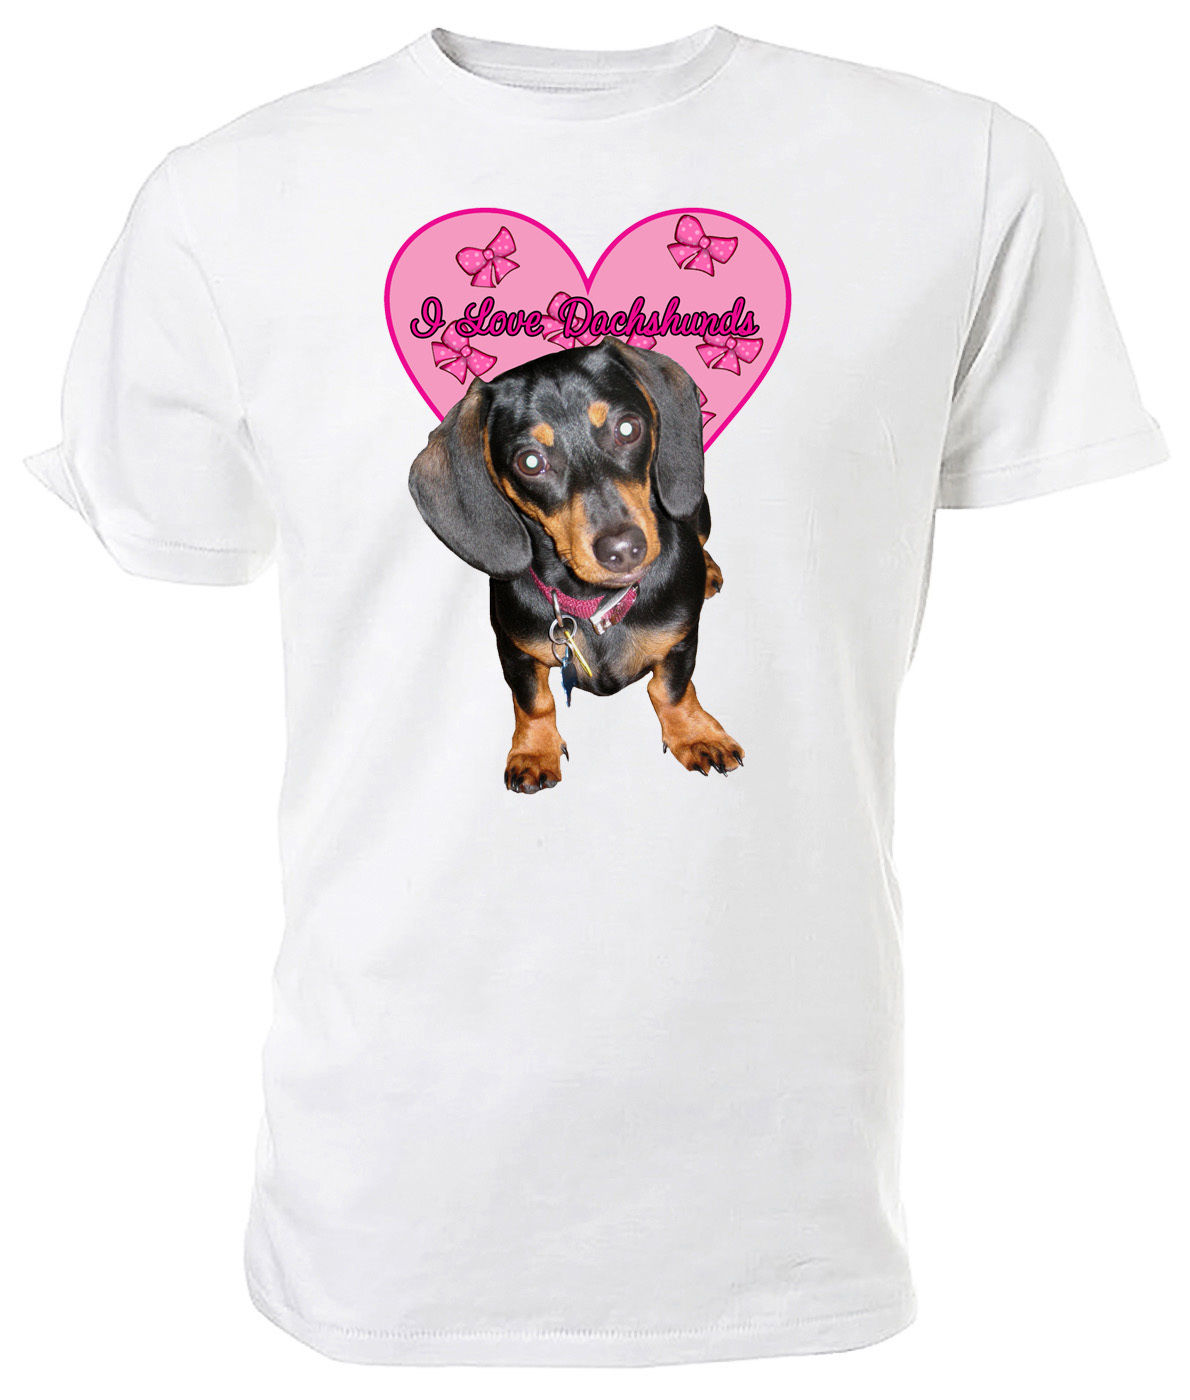 Dachshund Dog, I Love Dachshunds T shirt - Choice of size & colours!